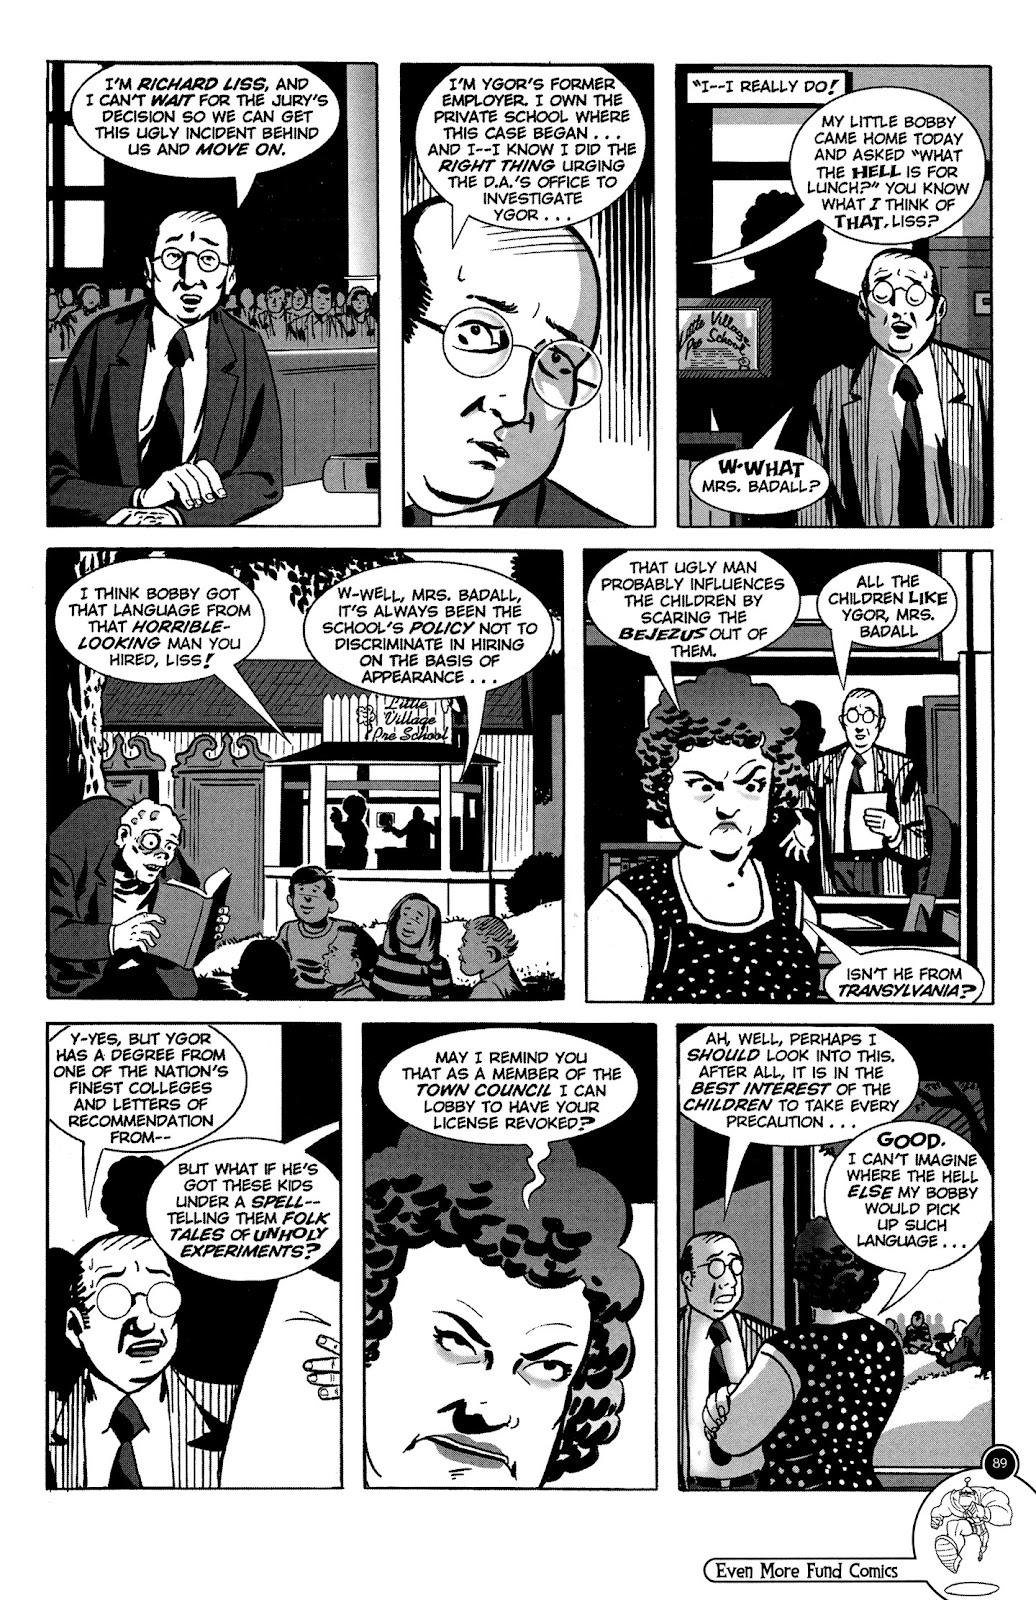 Read online Even More Fund Comics comic -  Issue # TPB (Part 1) - 89